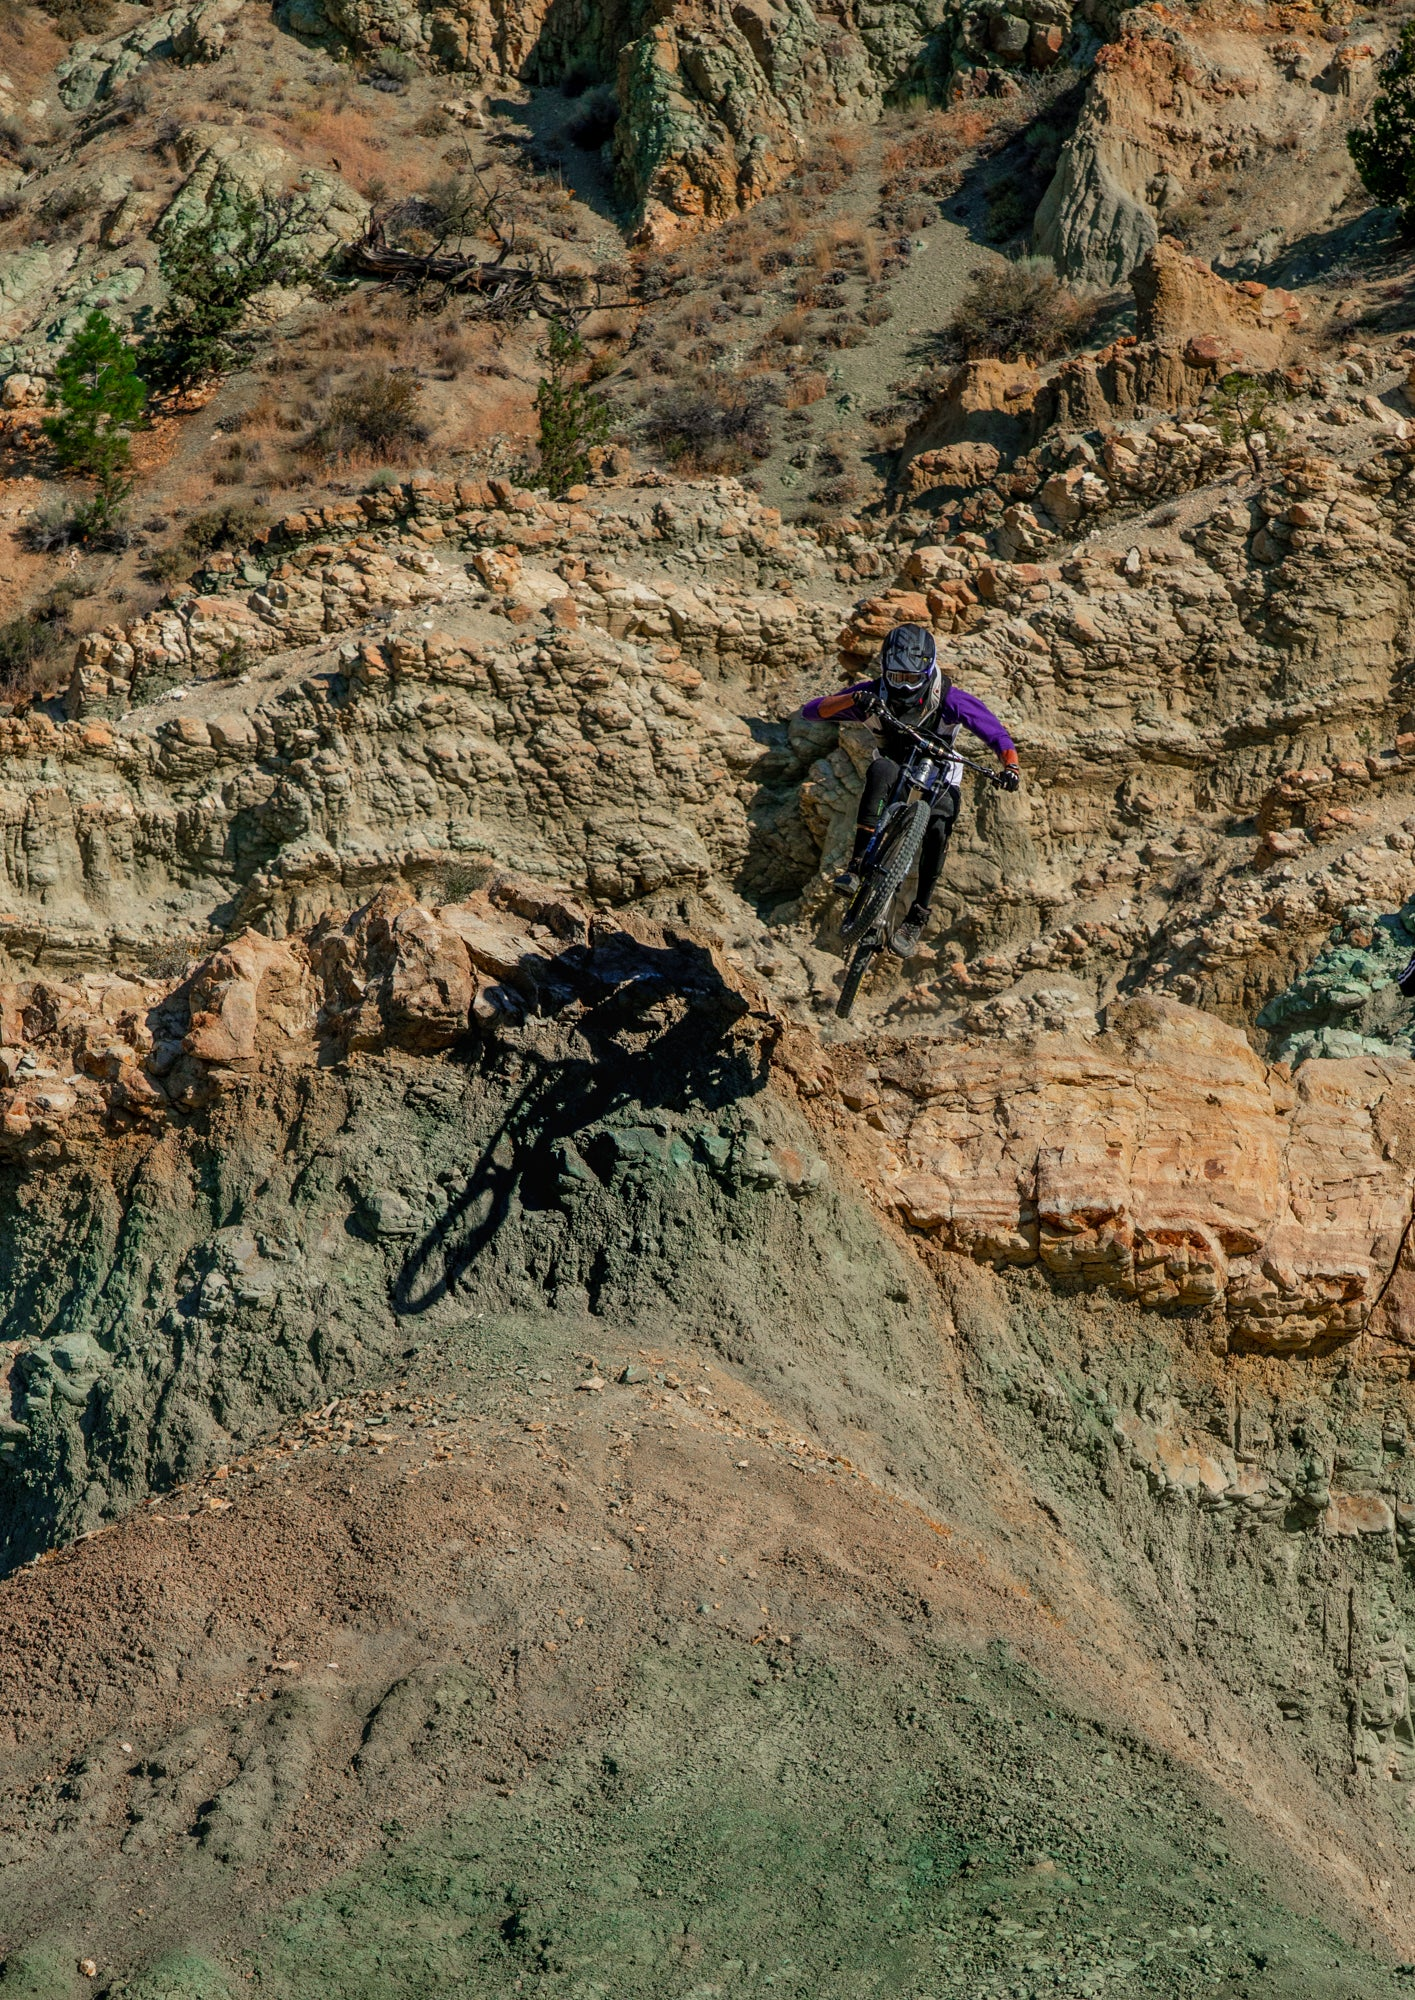 Mountain Biker Riding off a Jump